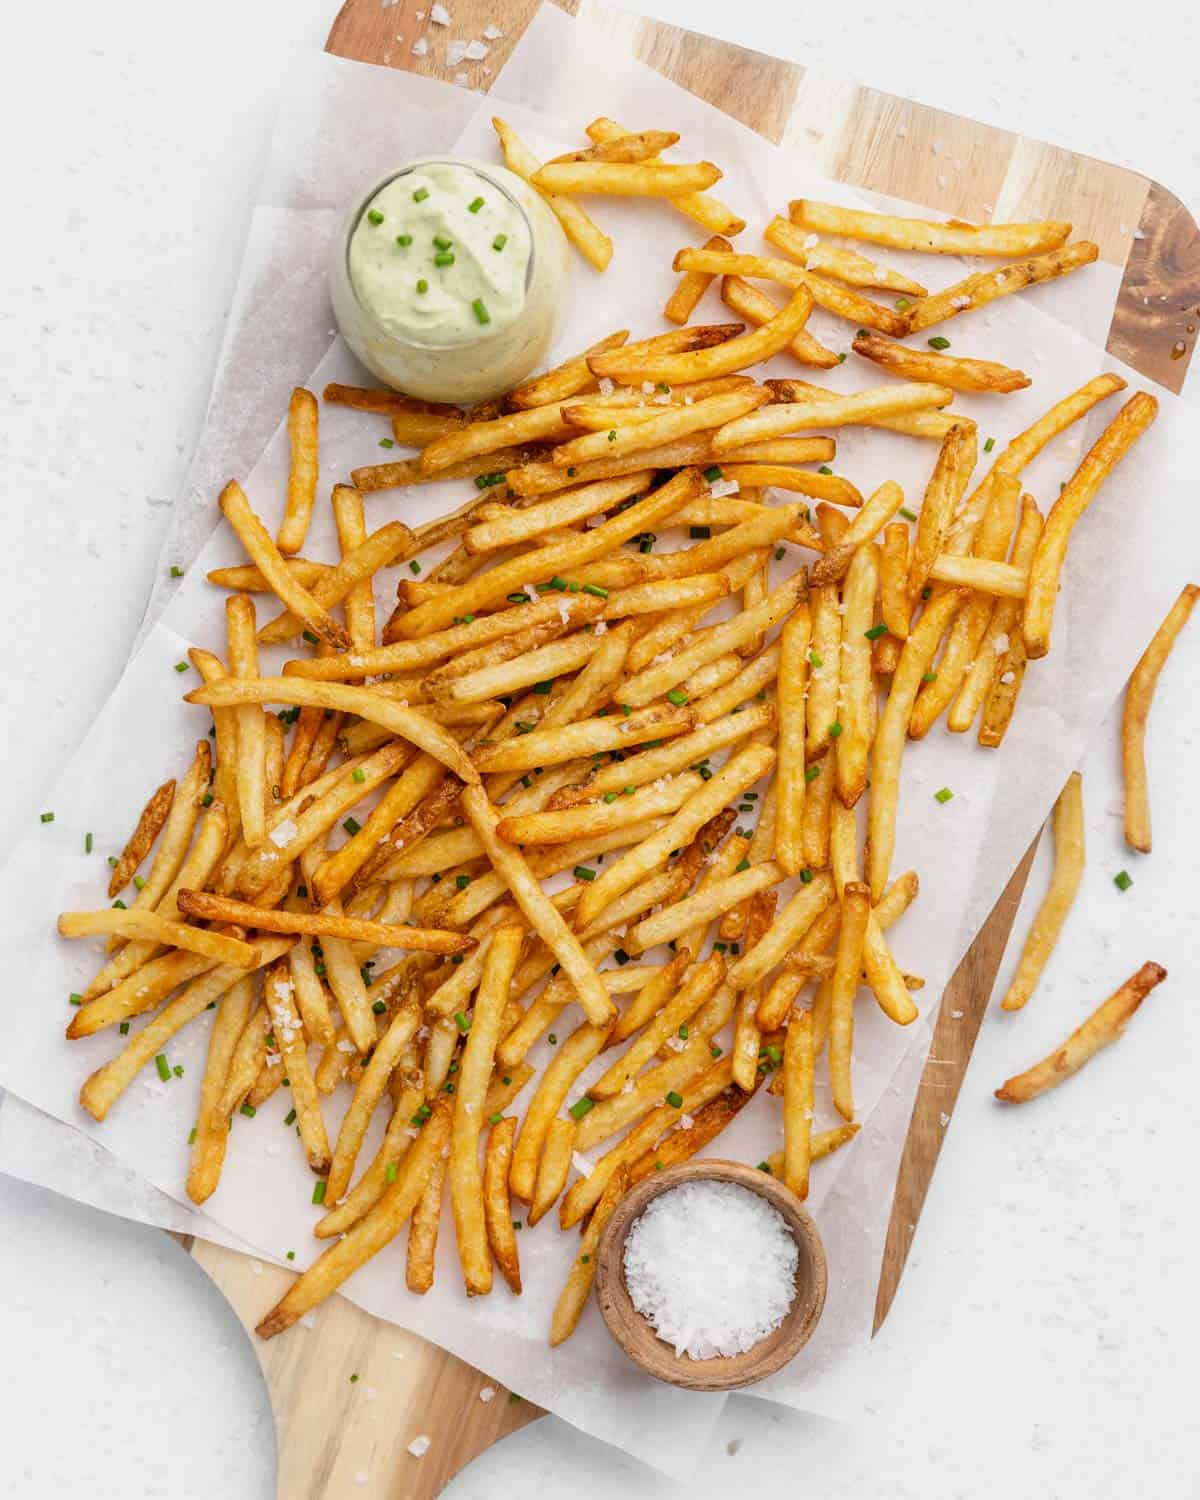 finished fries